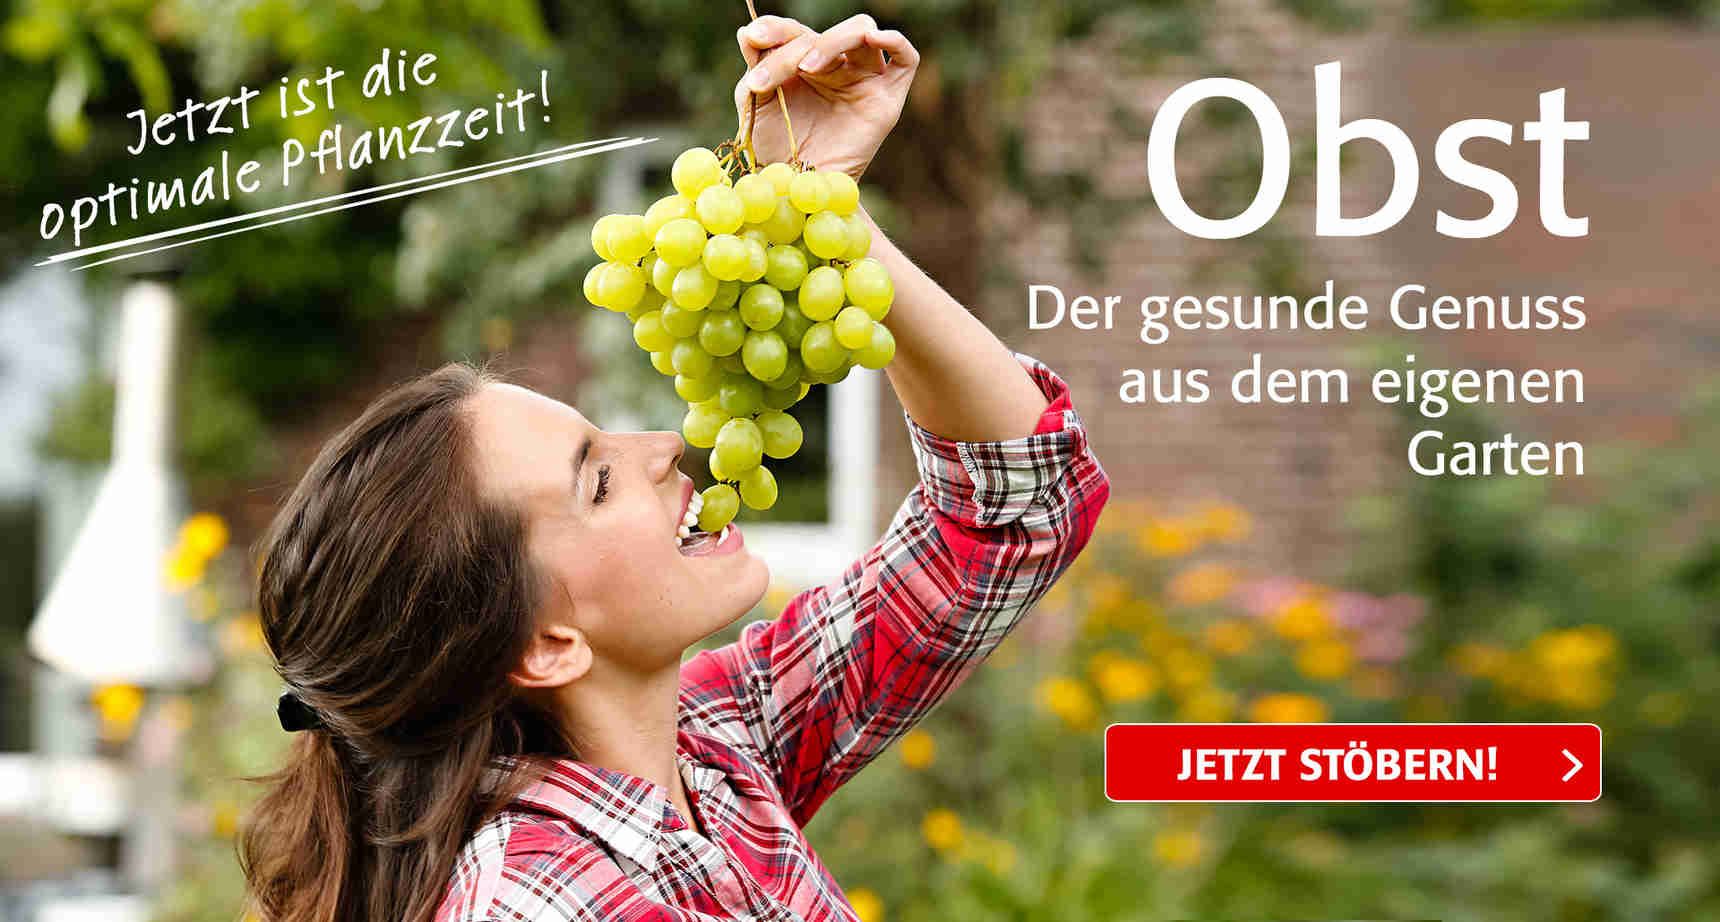 +++ (3) Obst +++ - 3